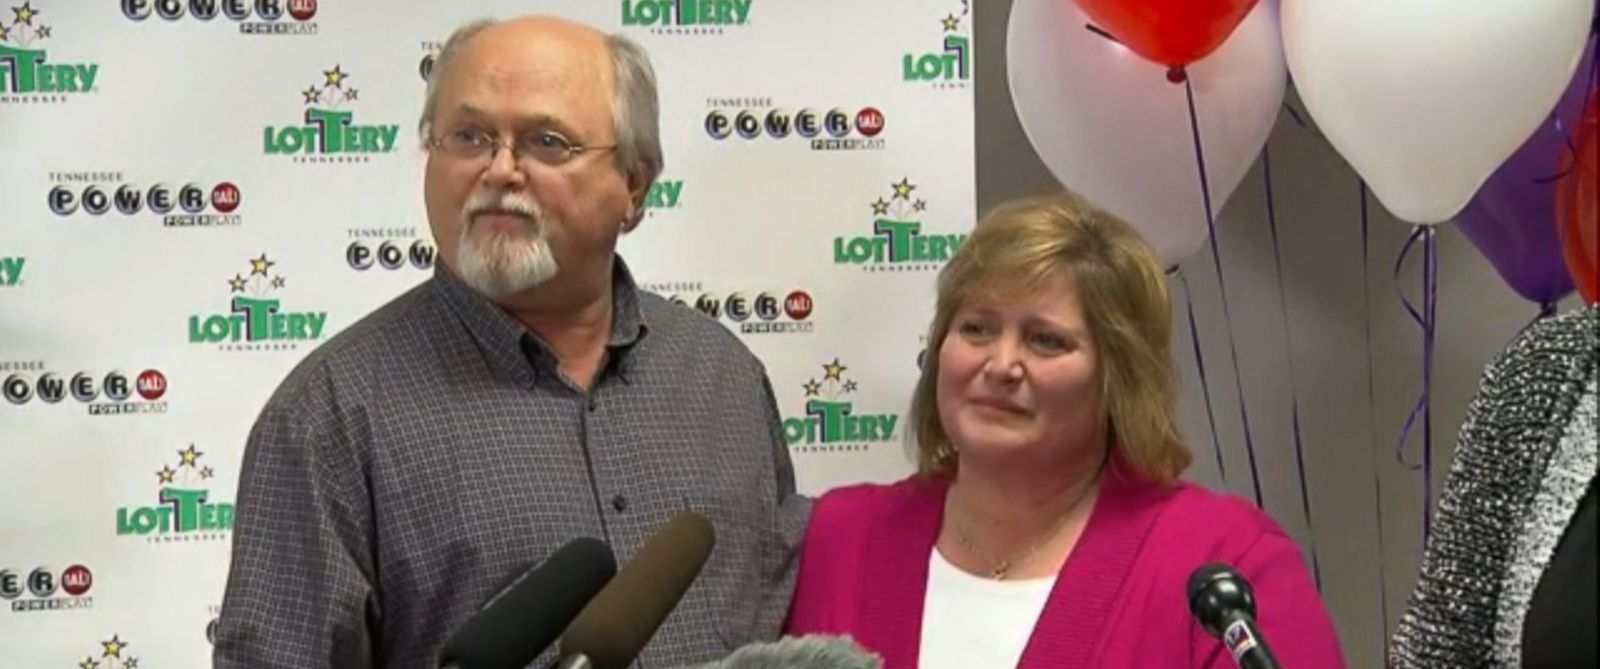 PHOTO: Powerball winners in Nashville, Tenn. on Jan. 15, 2016.